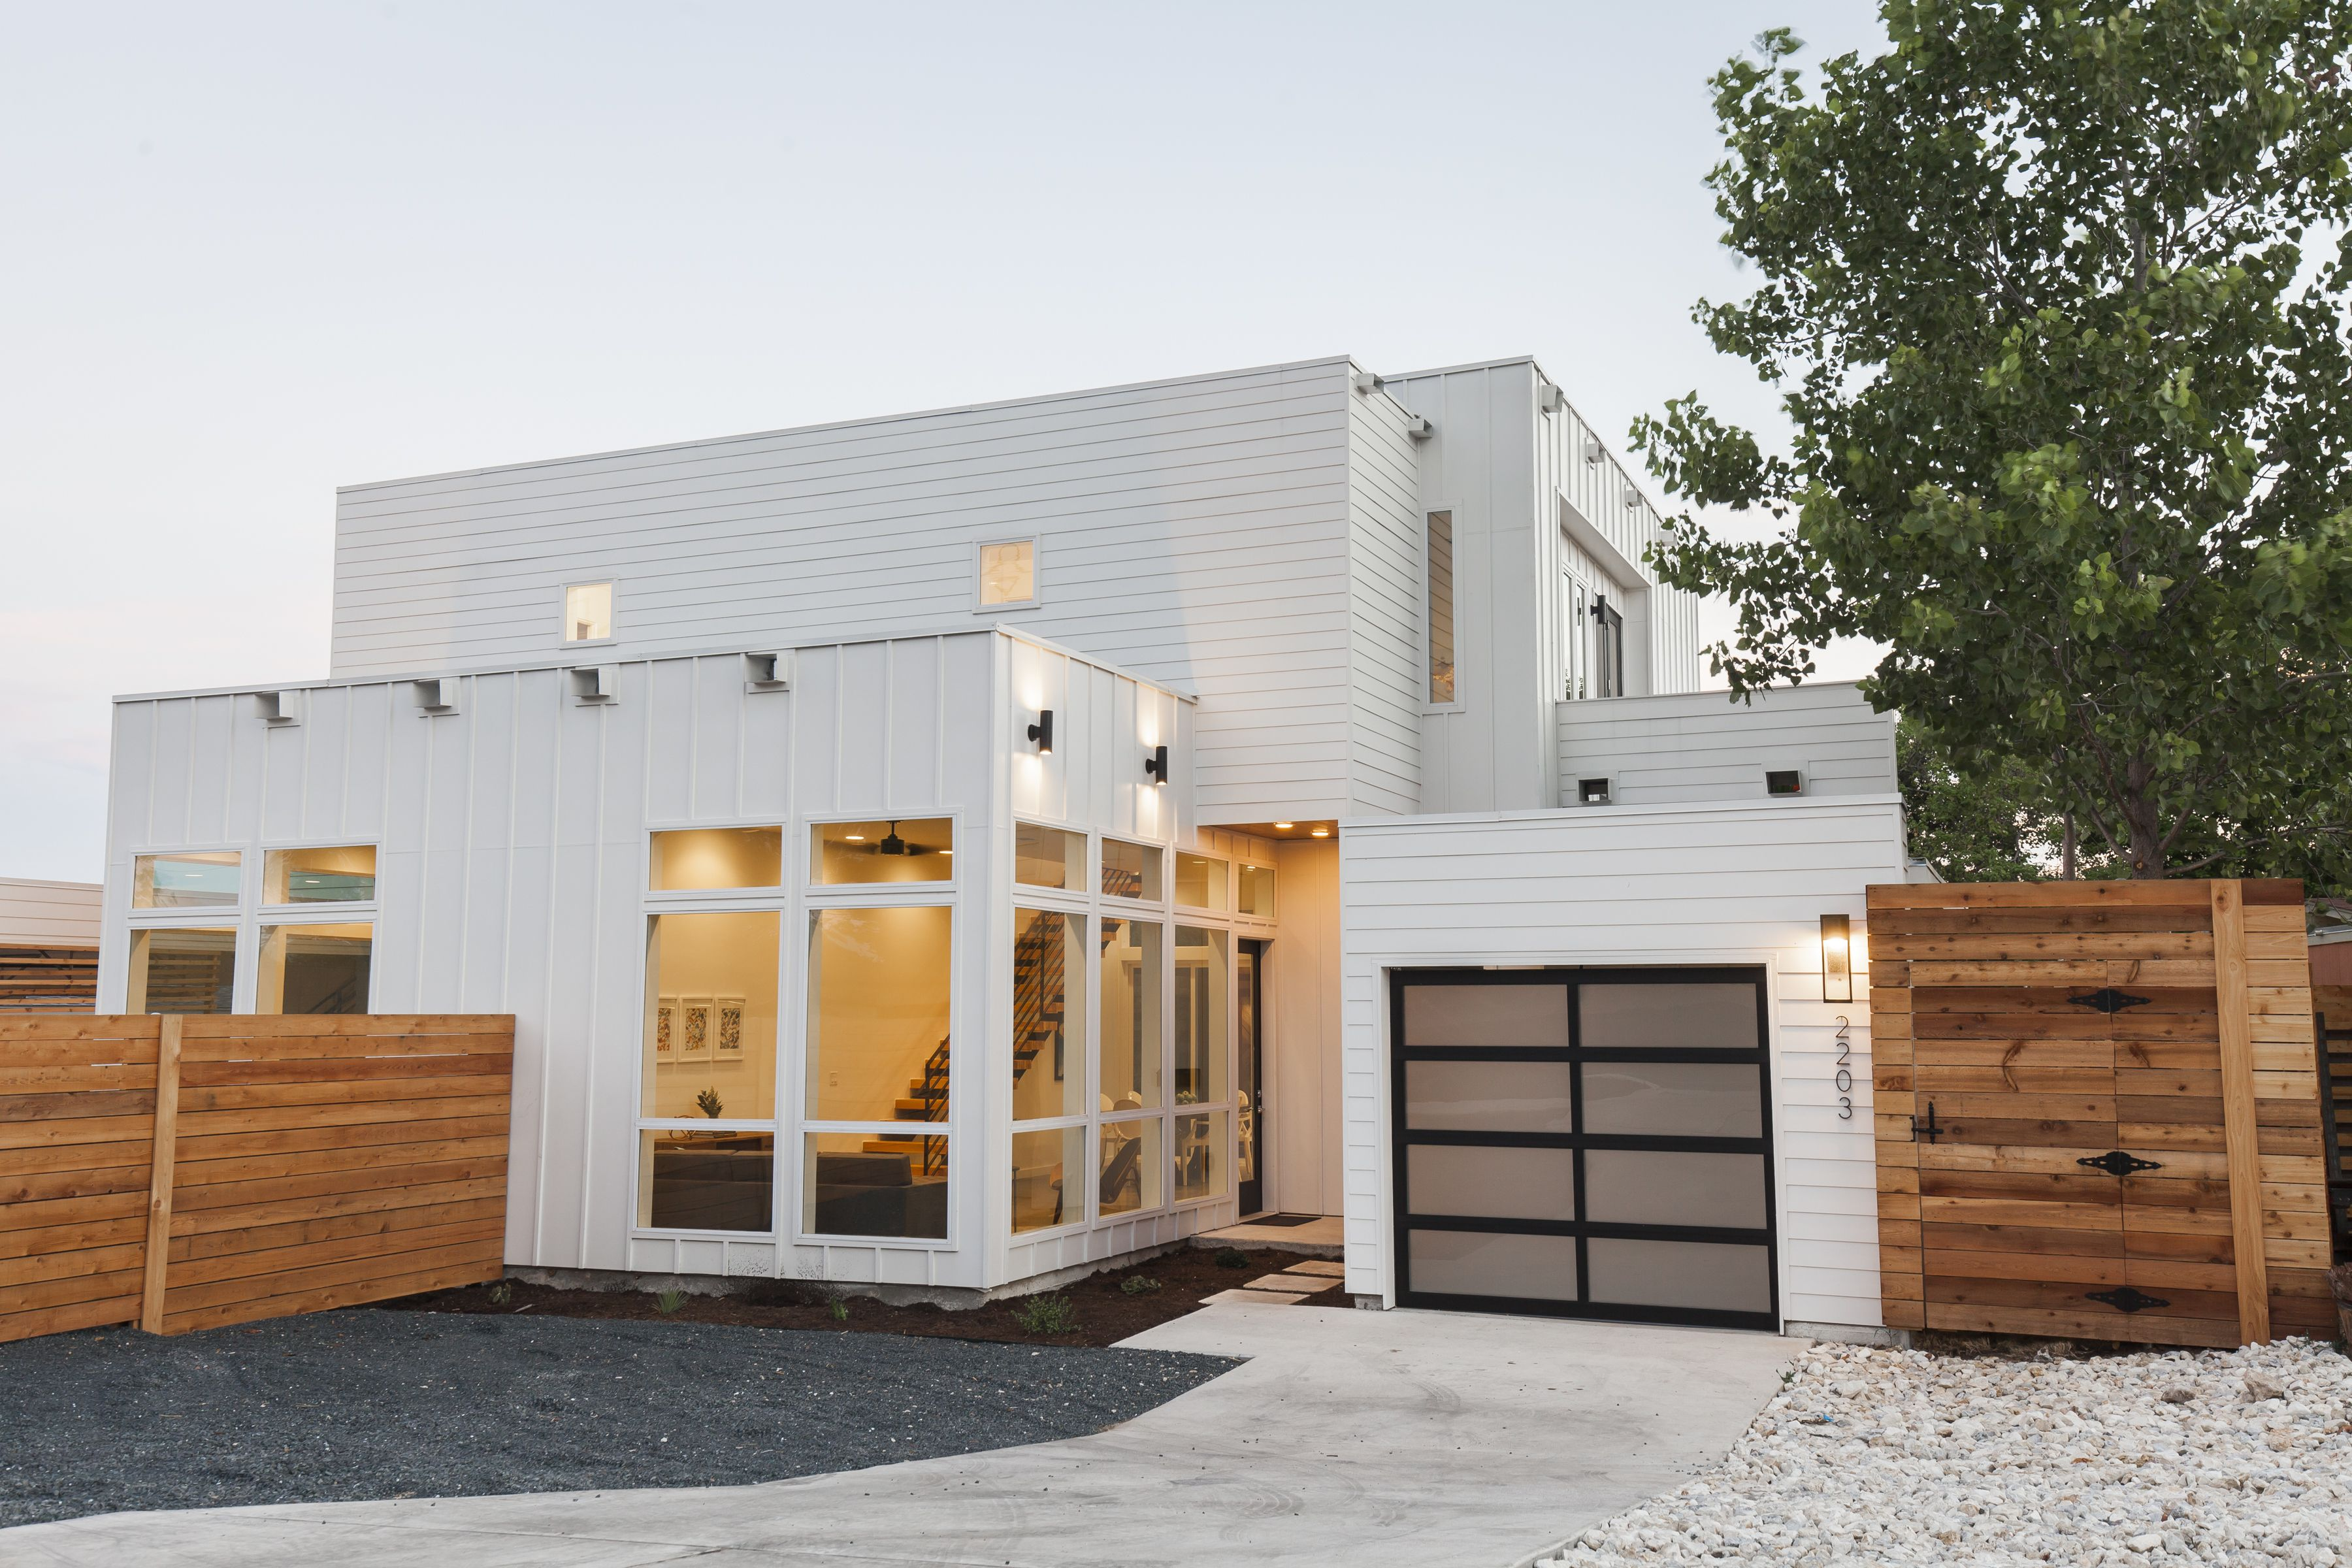 Photo 1 of 10 in Ship Shape: An Austin Home With a Shipping Container…